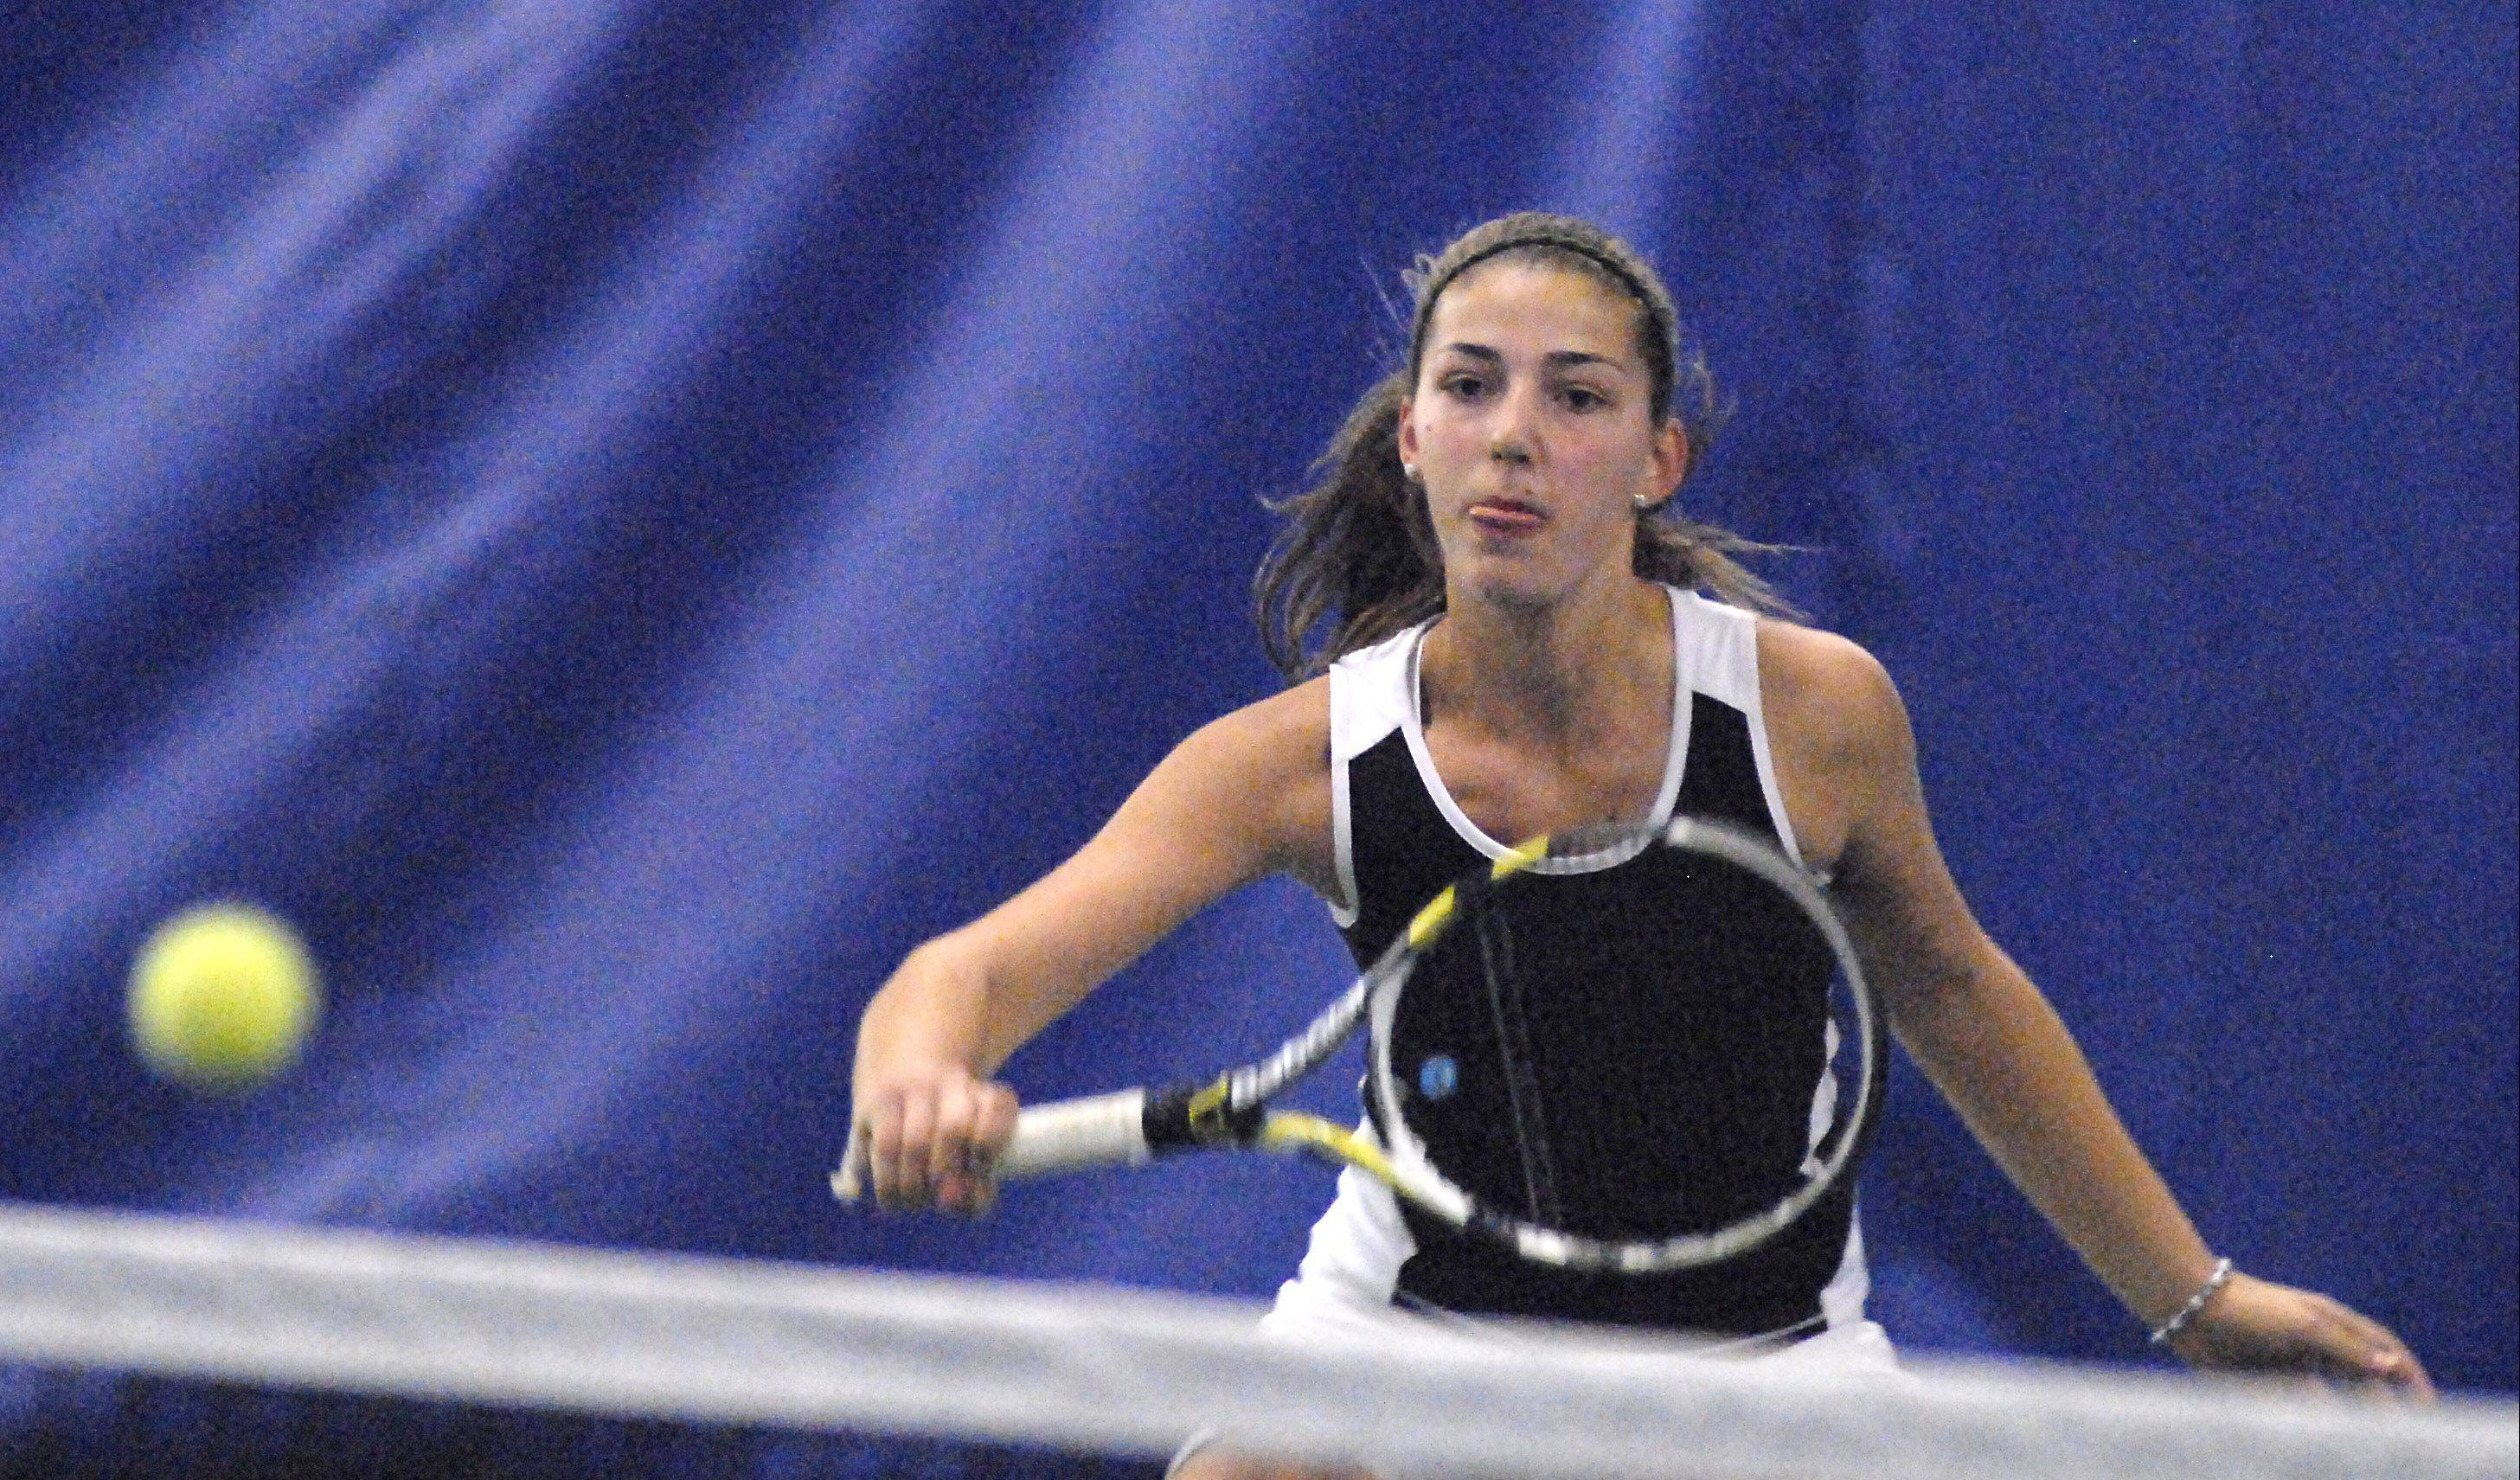 Kaneland's Angelica Emmanouil is headed to state after finishing third in doubles at the St. Charles East sectional.